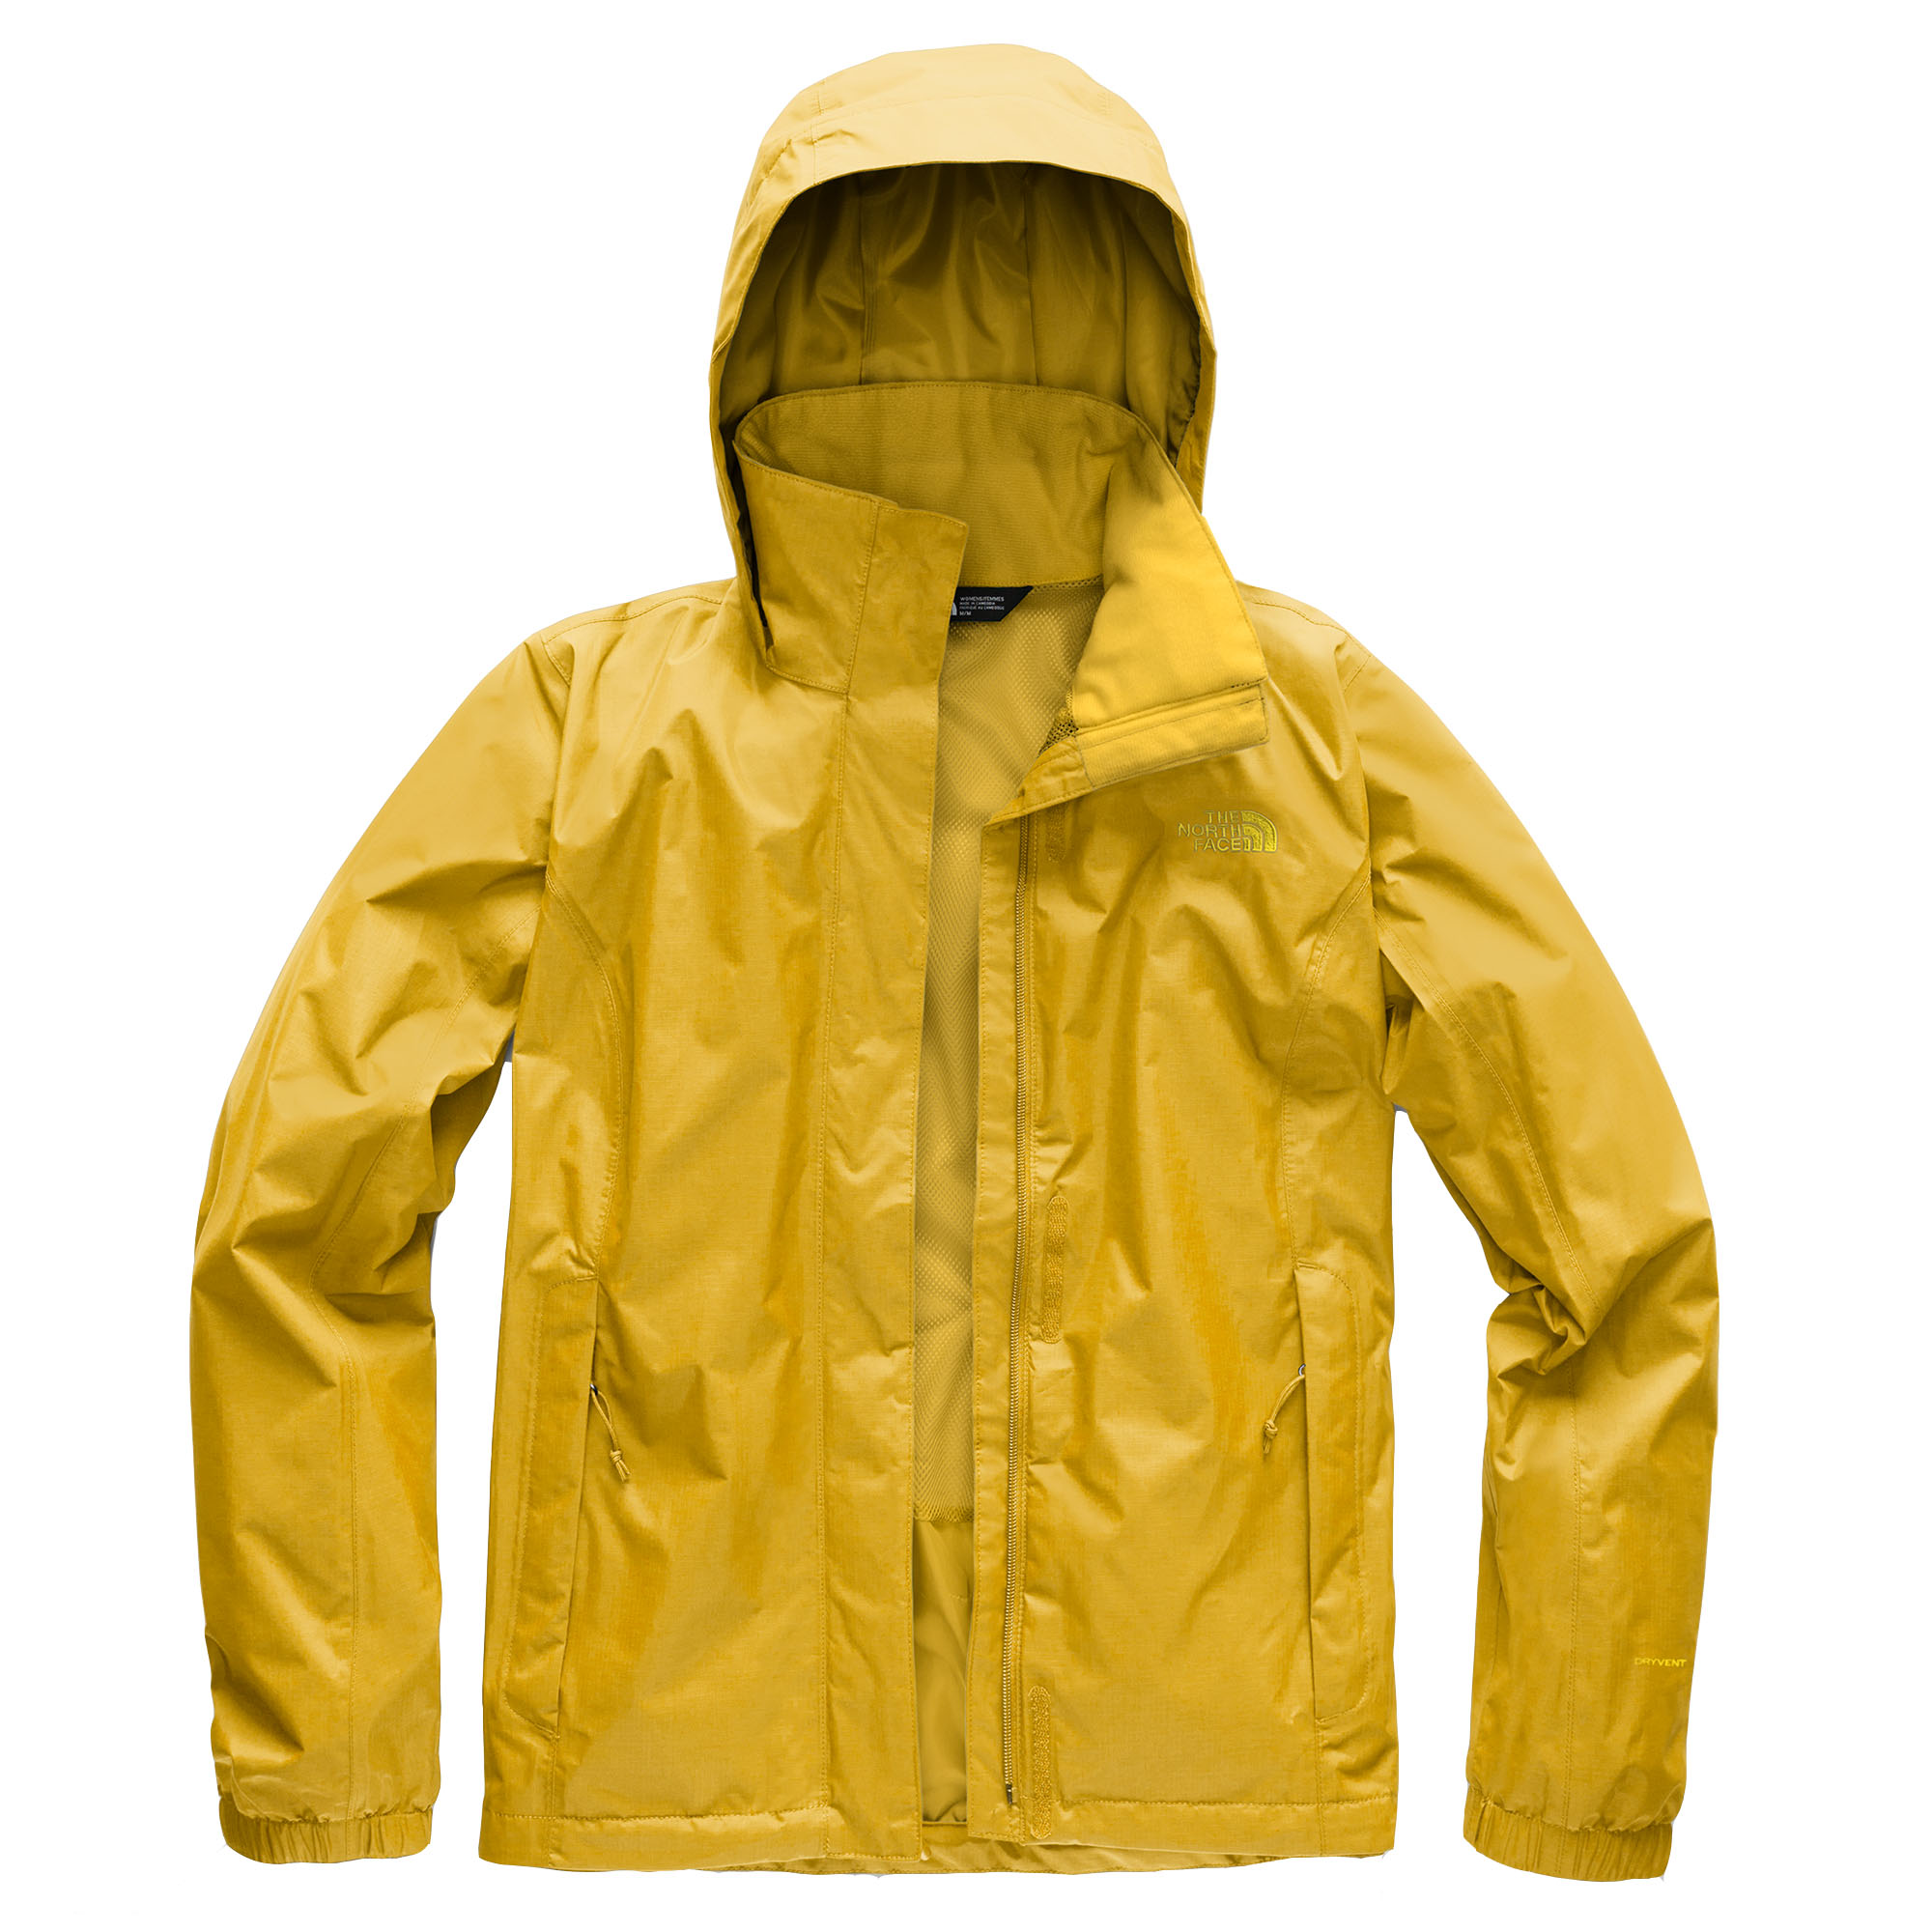 939166e71 The North Face Women's Resolve 2 Jacket, Yellow